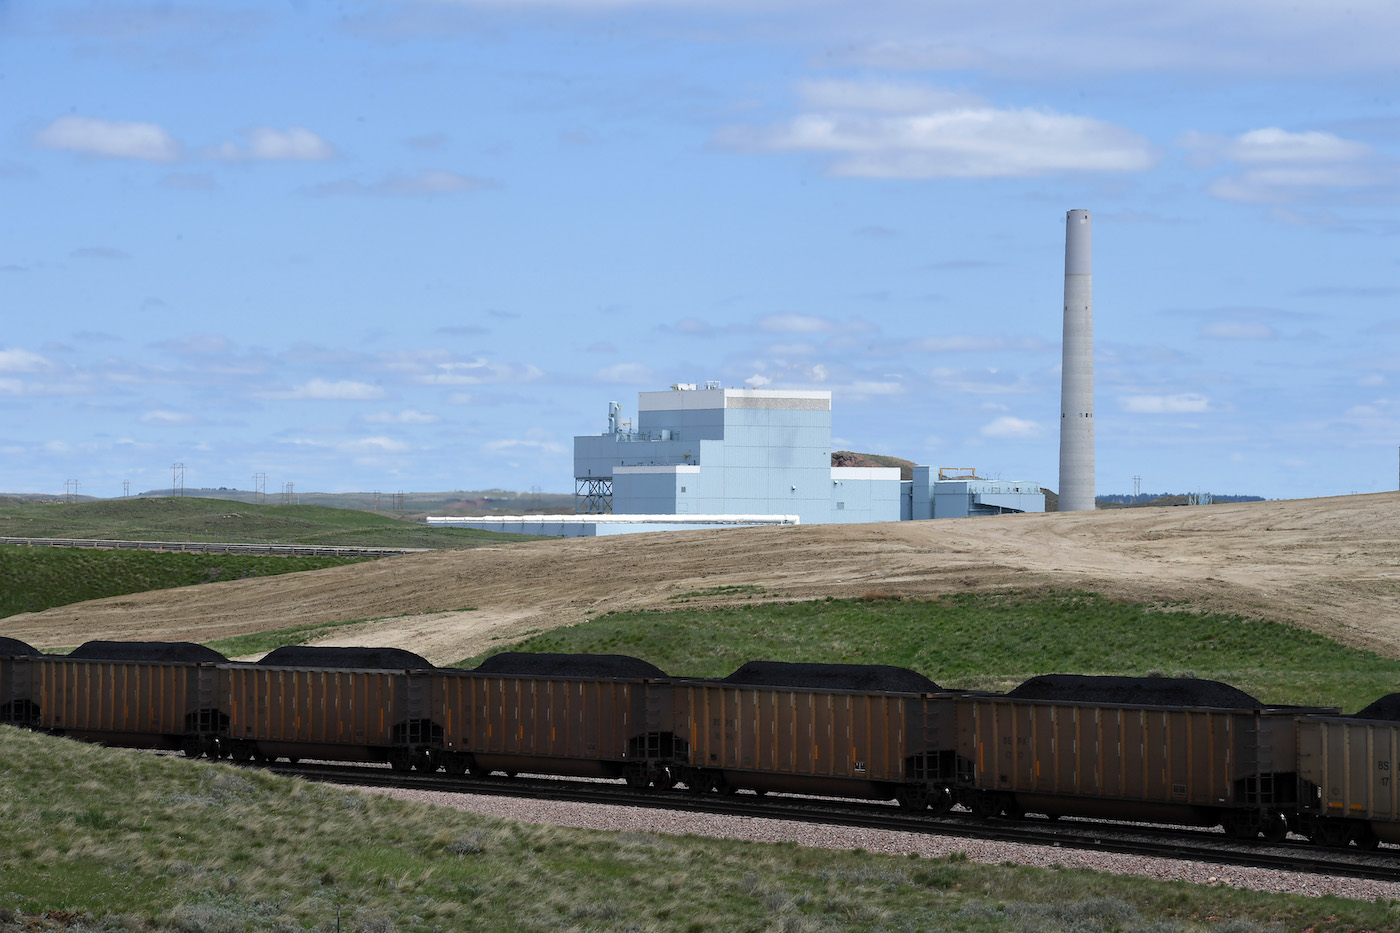 A coal plant in the distance with a train full of coal going by in the foreground